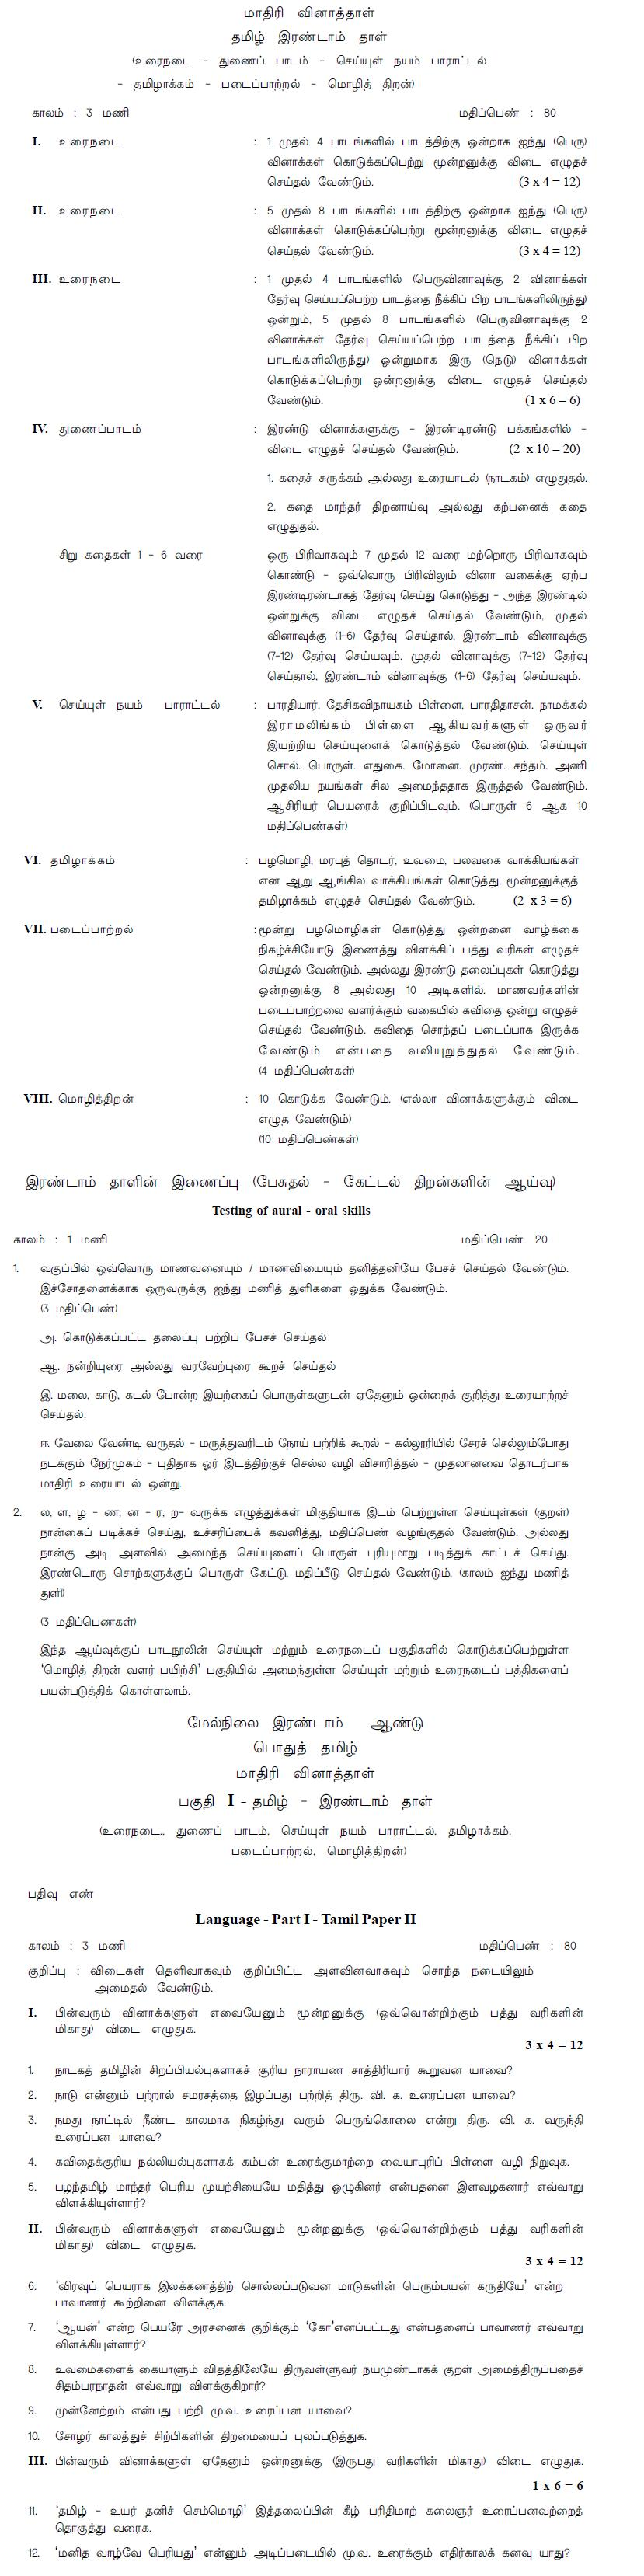 Tamil Nadu Board 2013 Class 12 Model Question Paper - Tamil